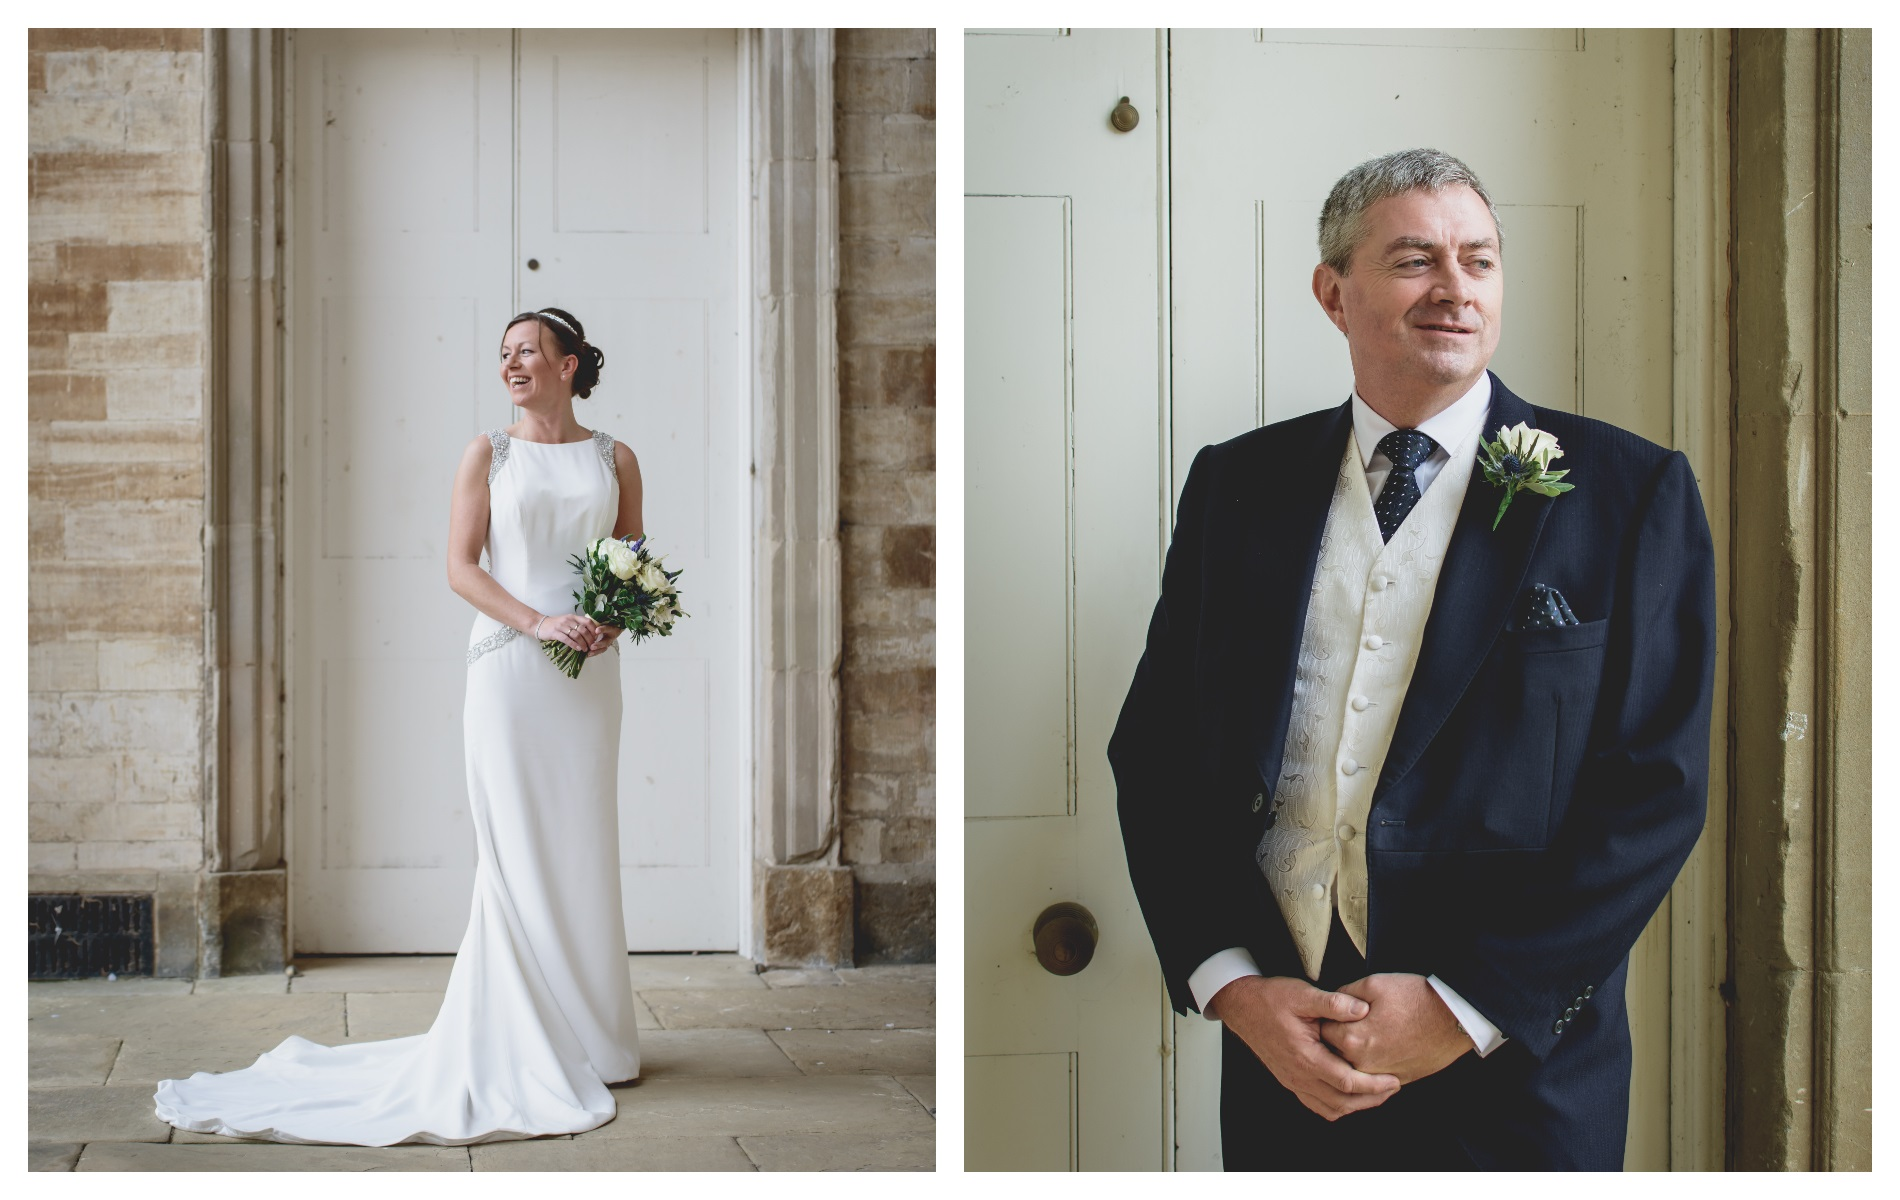 Compton Verney Wedding Photography by Chris Fossey Photography Claire 3